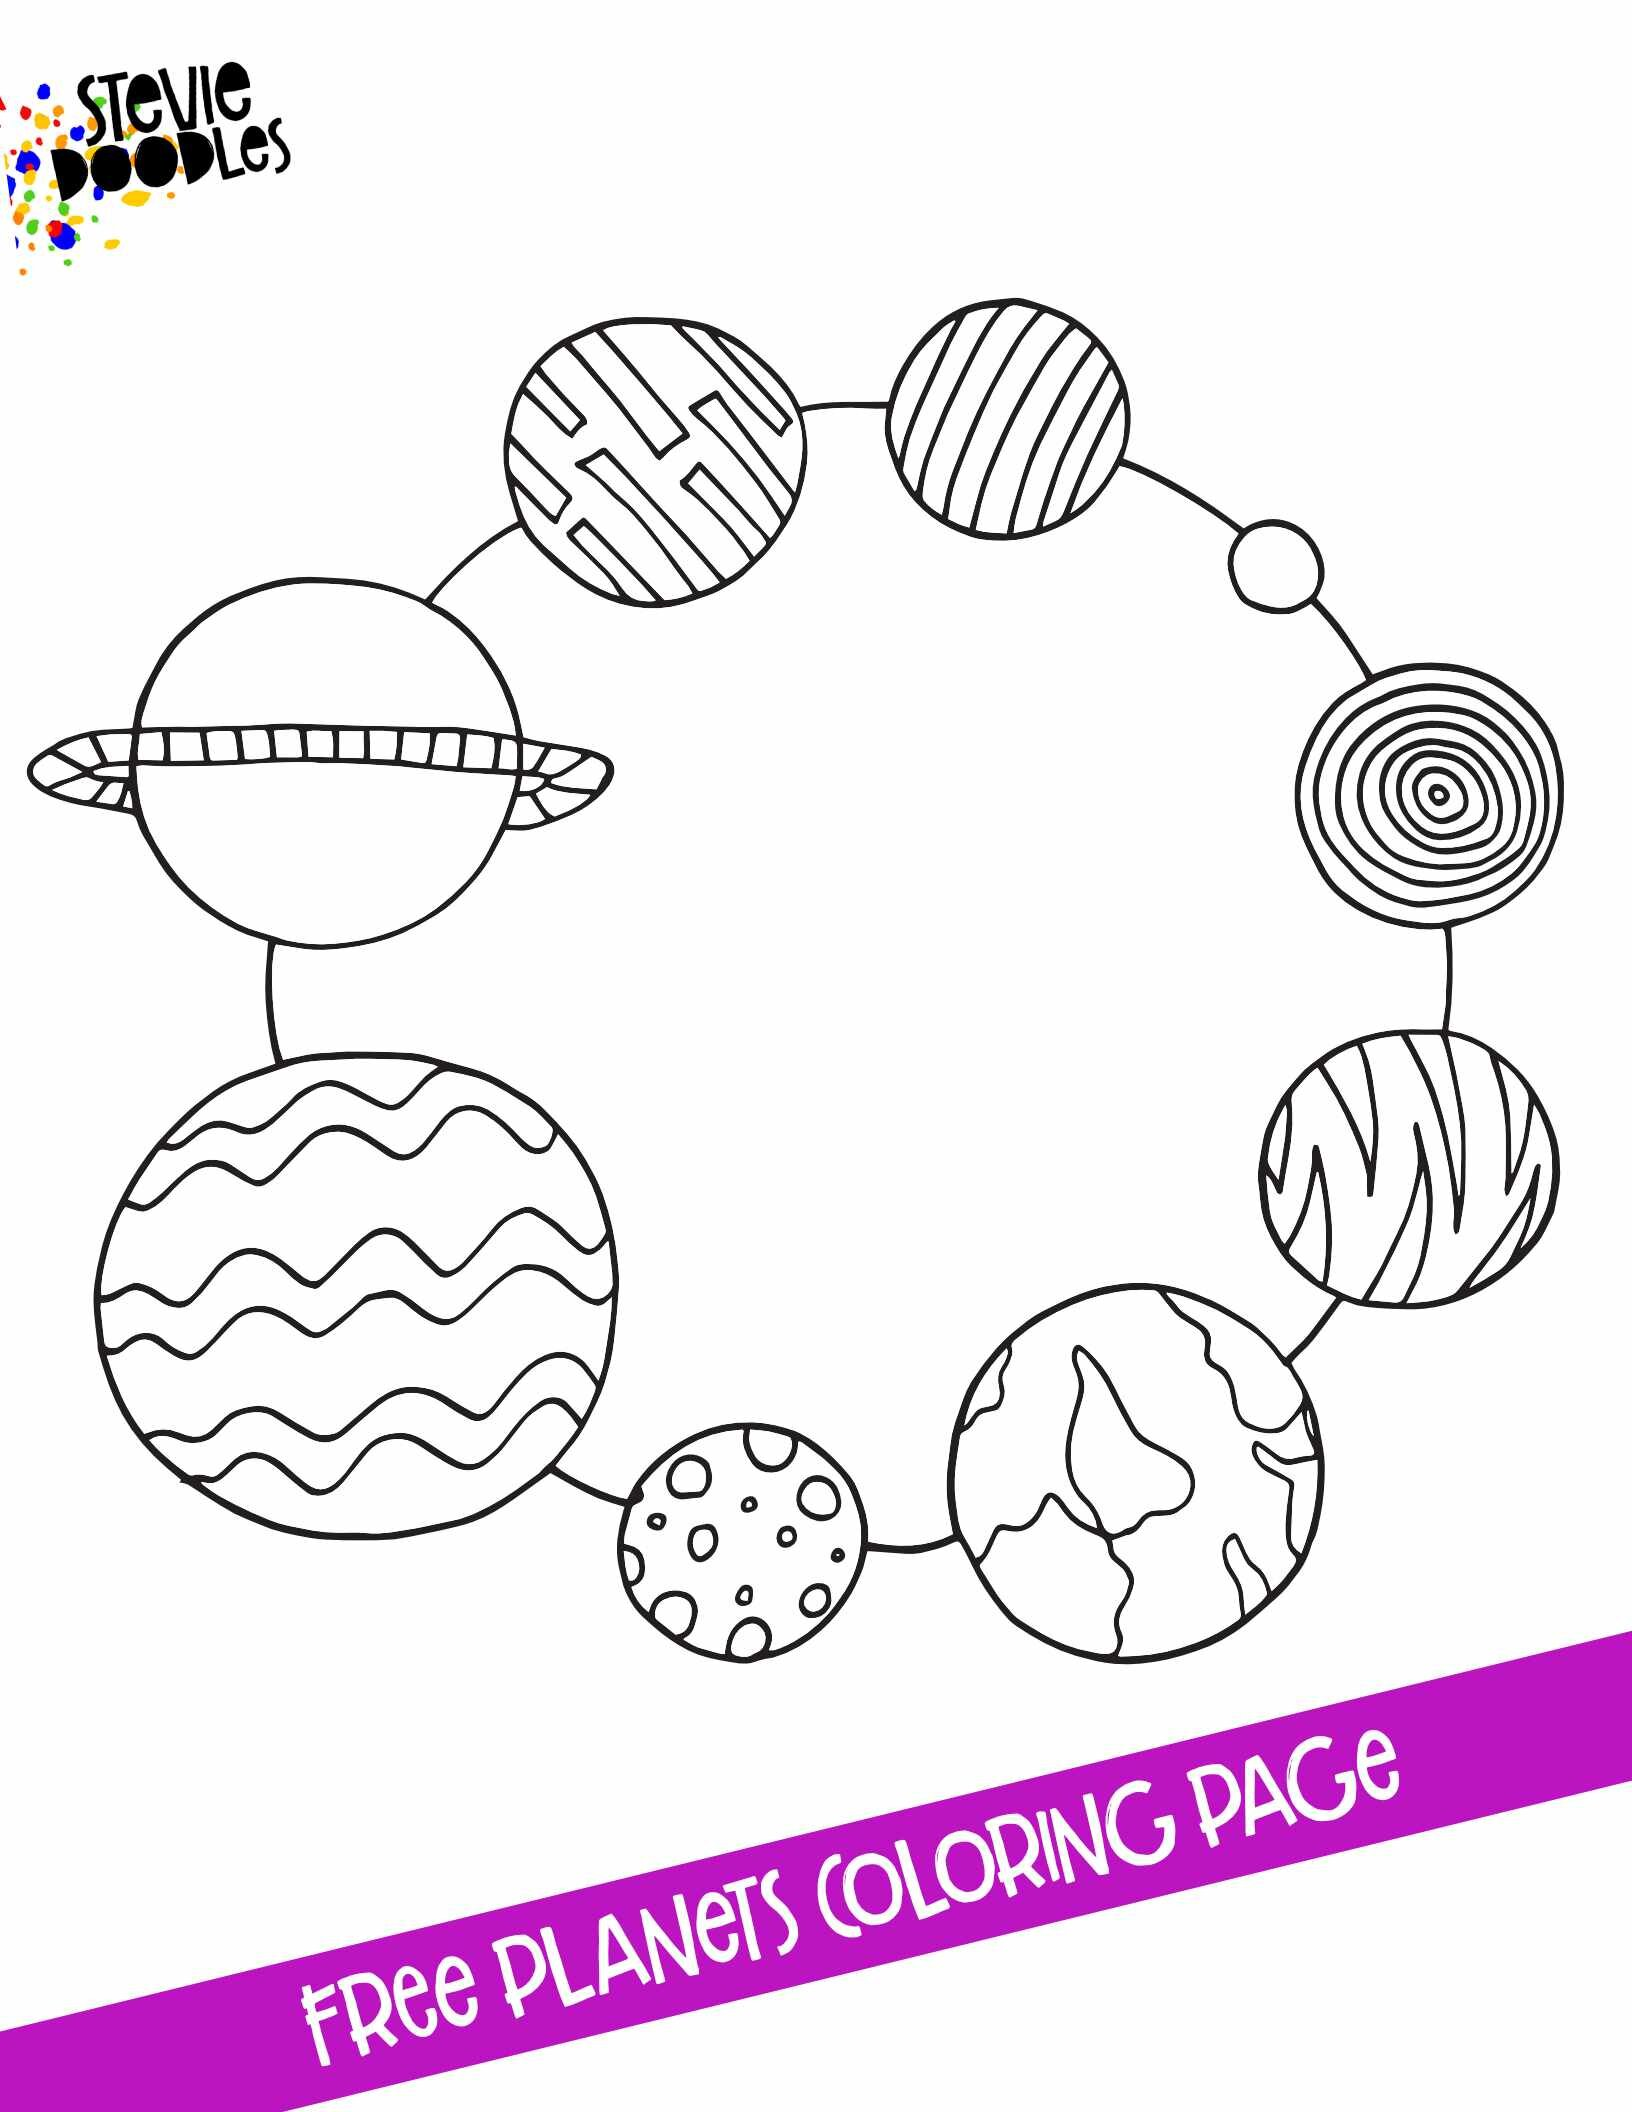 - Free Printable Coloring — Free Coloring Pages — Stevie Doodles